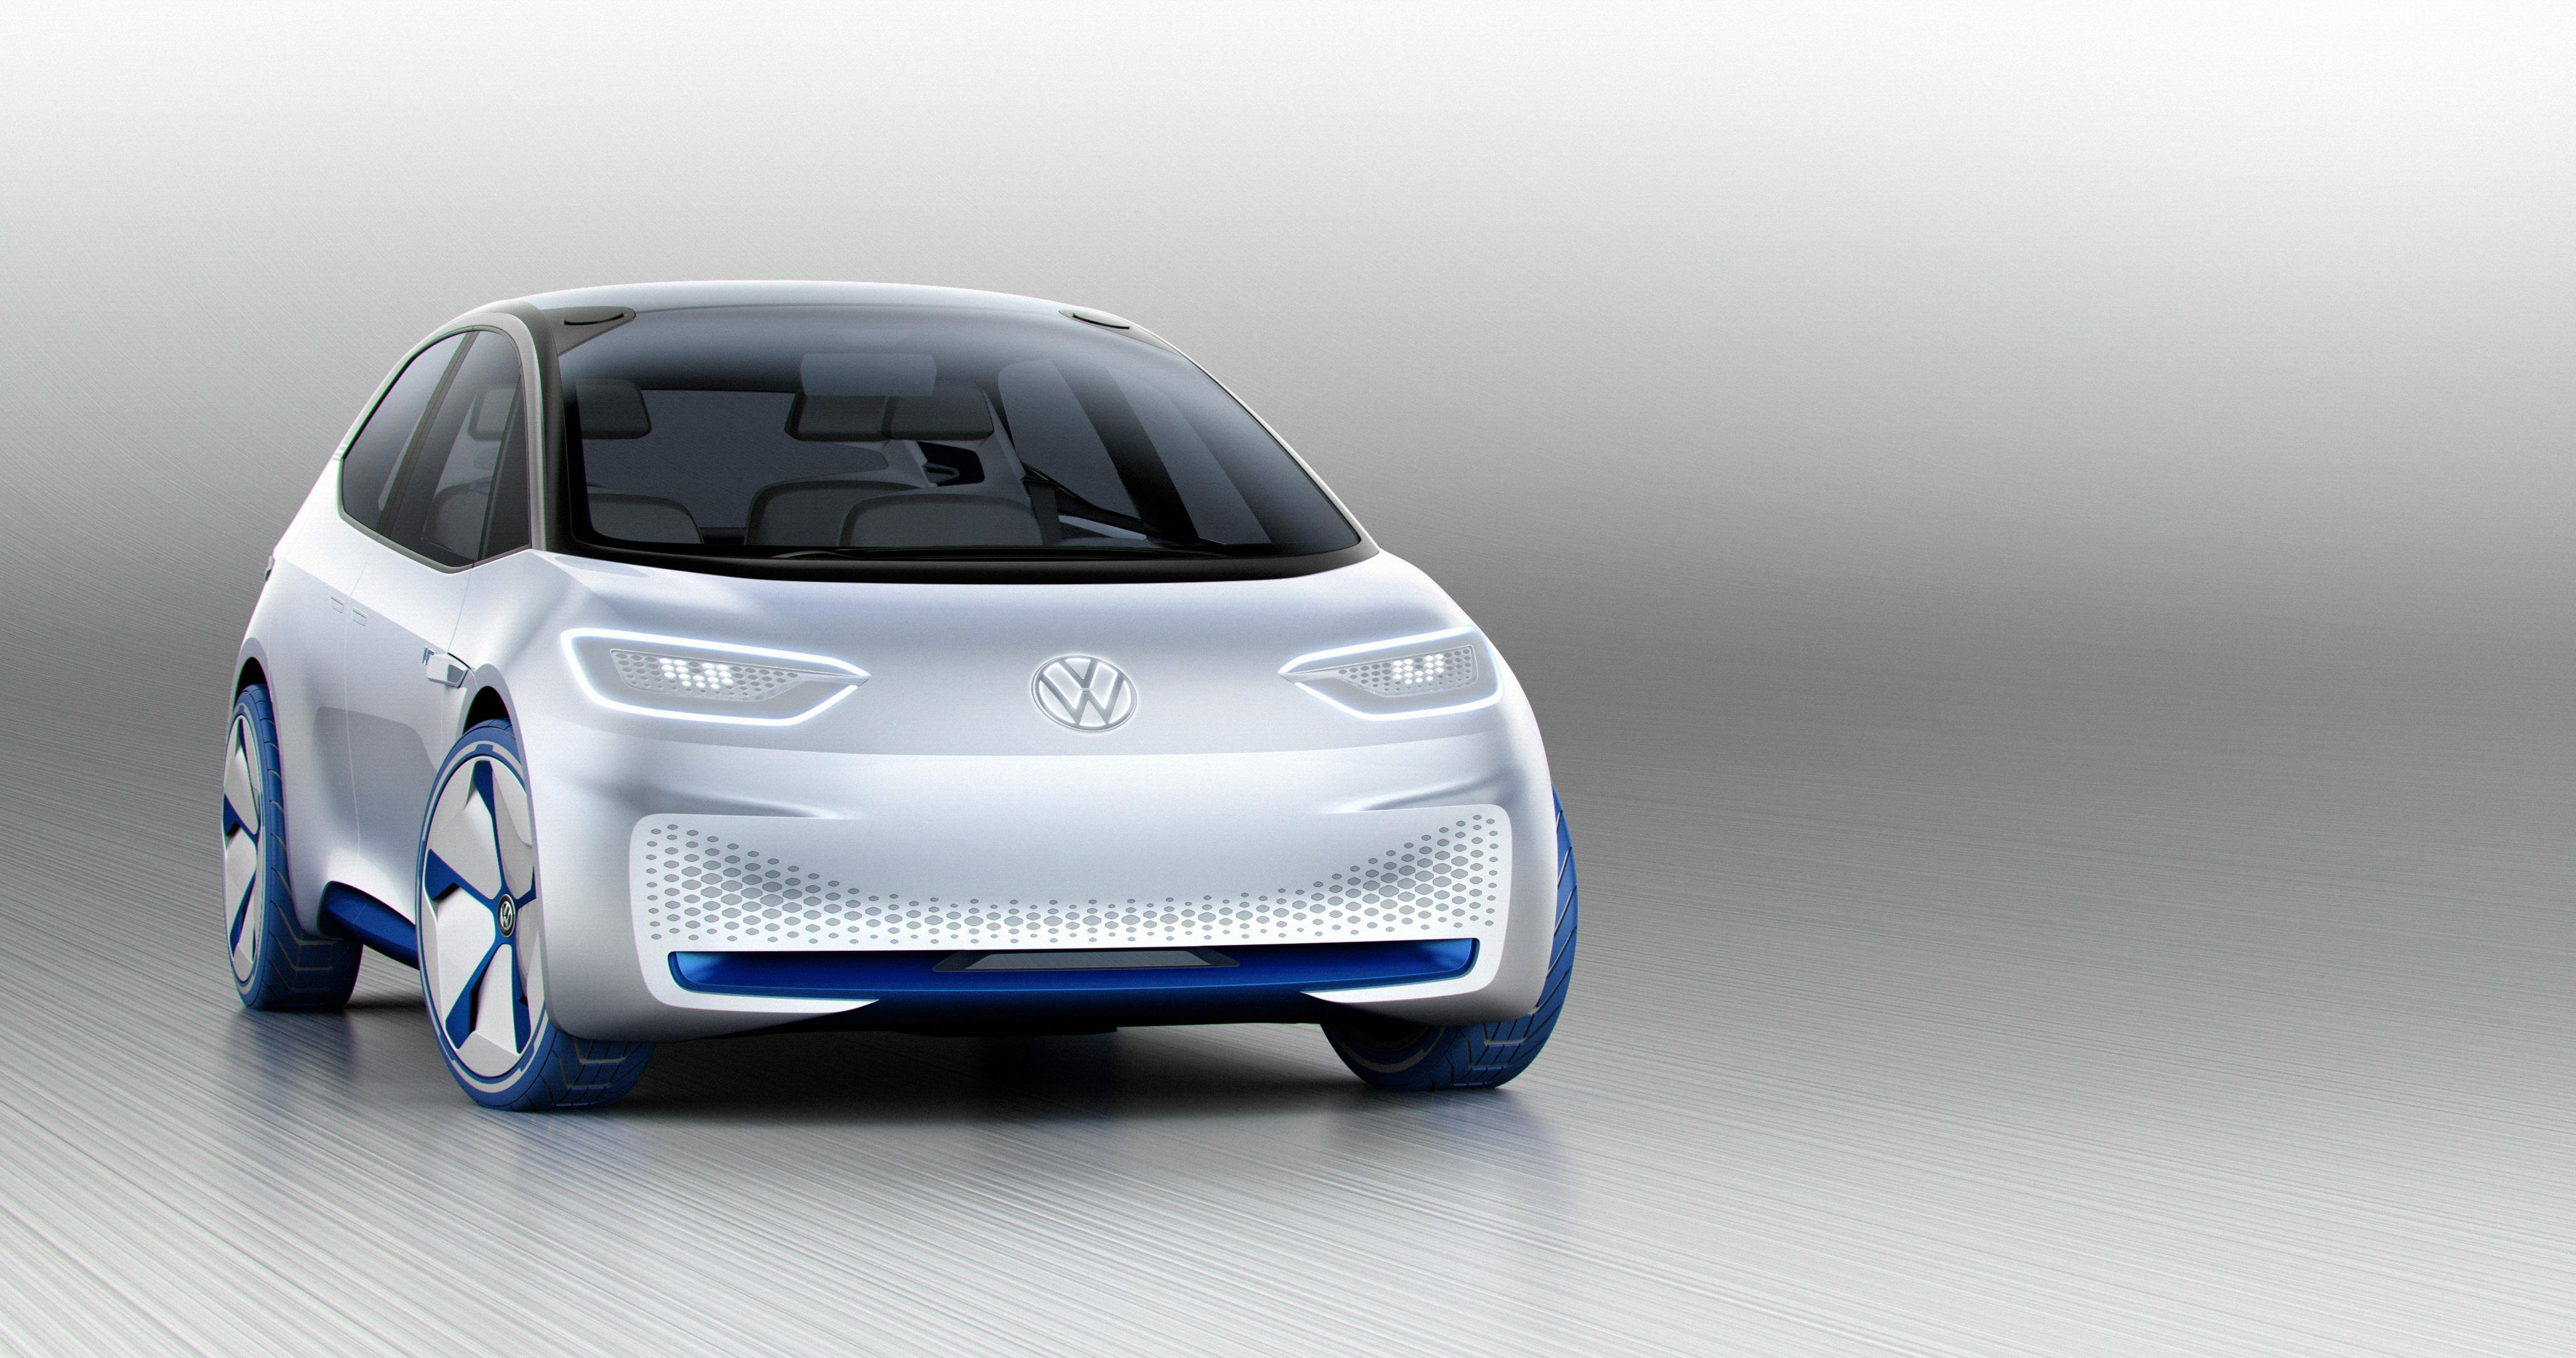 Wallpapers Volkswagen I.D, Concept Cars, Electric Cars, Paris Motor